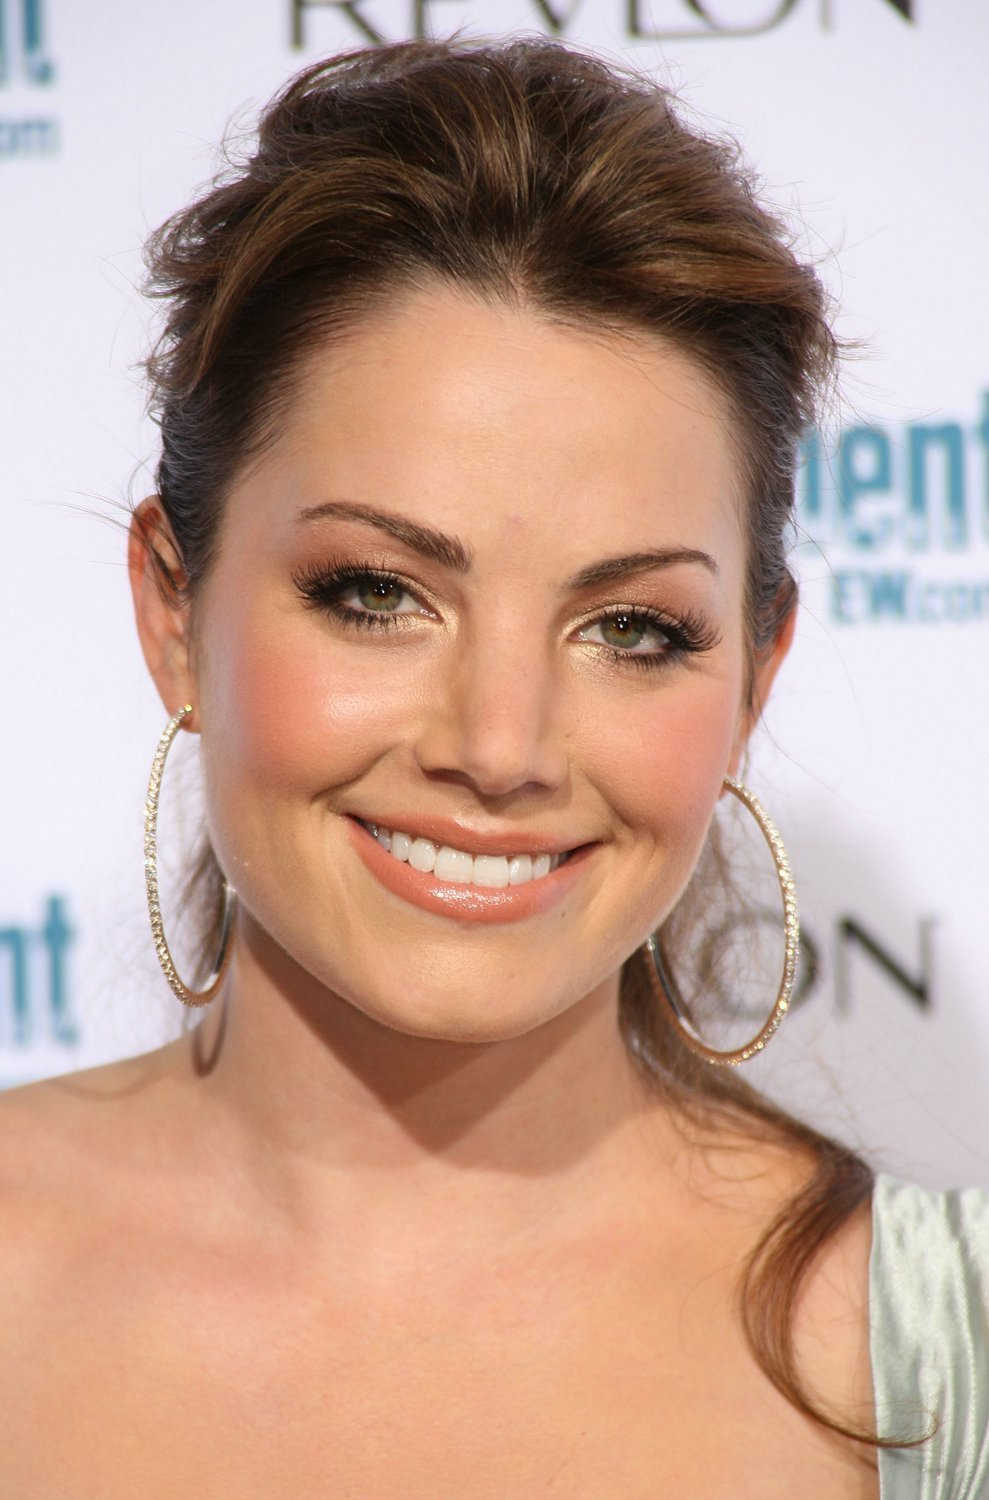 CW Networks Affiliate Launch Party - Erica Durance Photo